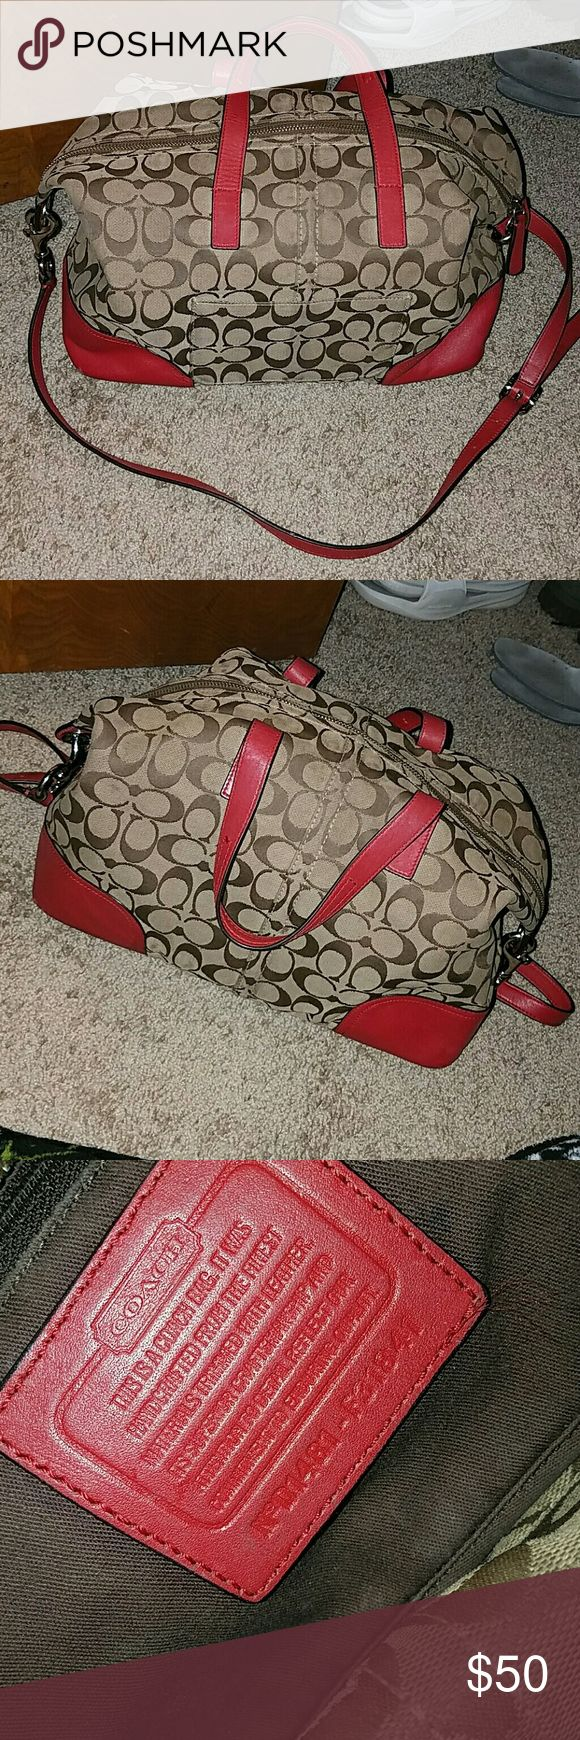 REAL Coach Tote/ Purse REAL Coach Tote/ Purse.  Tan, brown, red. Used. Inside has a few makeup stains, probably can come out. Outside edges have a few marks. Coach Bags Totes